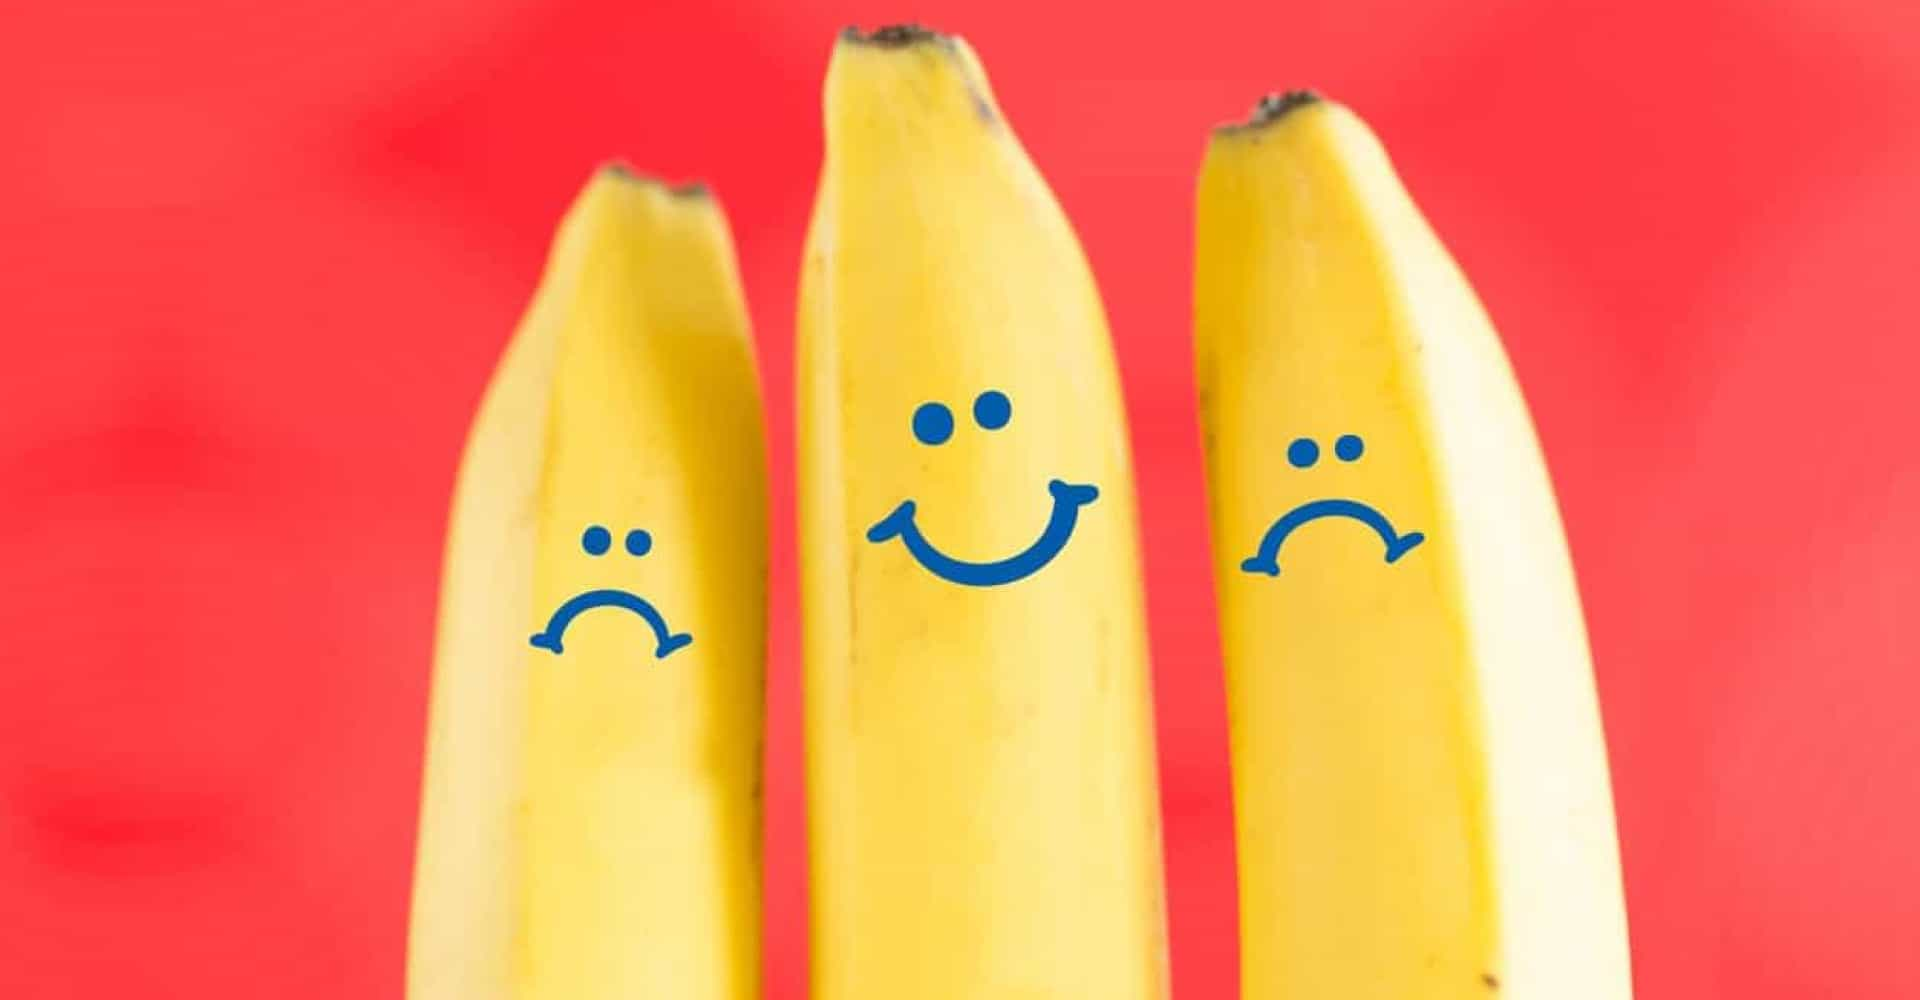 Why you should never eat bananas for breakfast